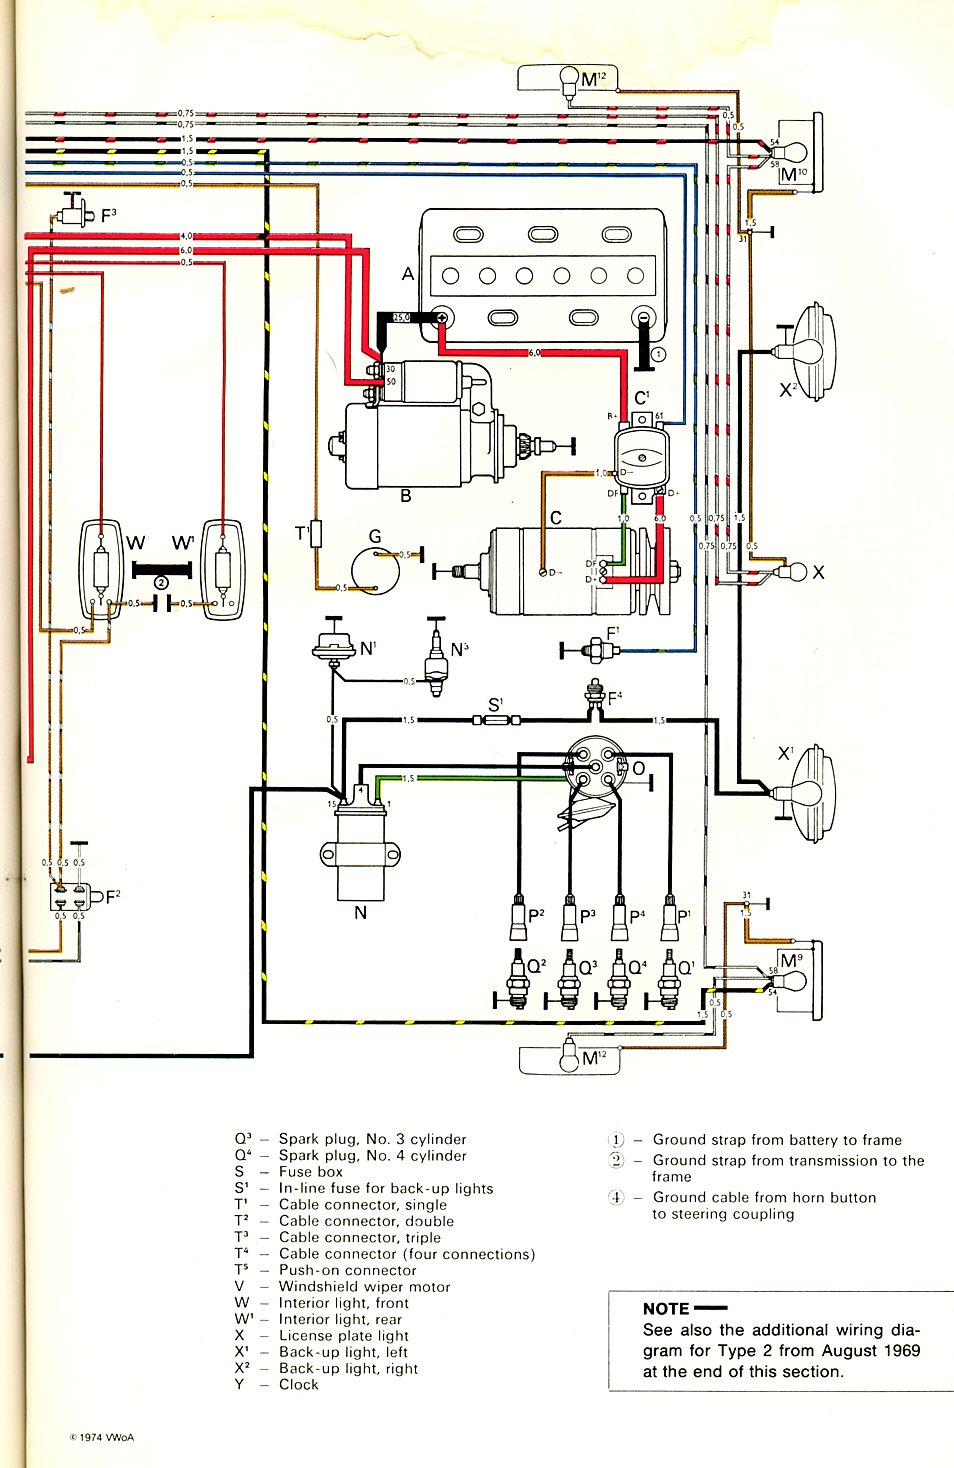 Type 2 Wiring Diagrams 1975 Plymouth Valiant Diagram Schematic